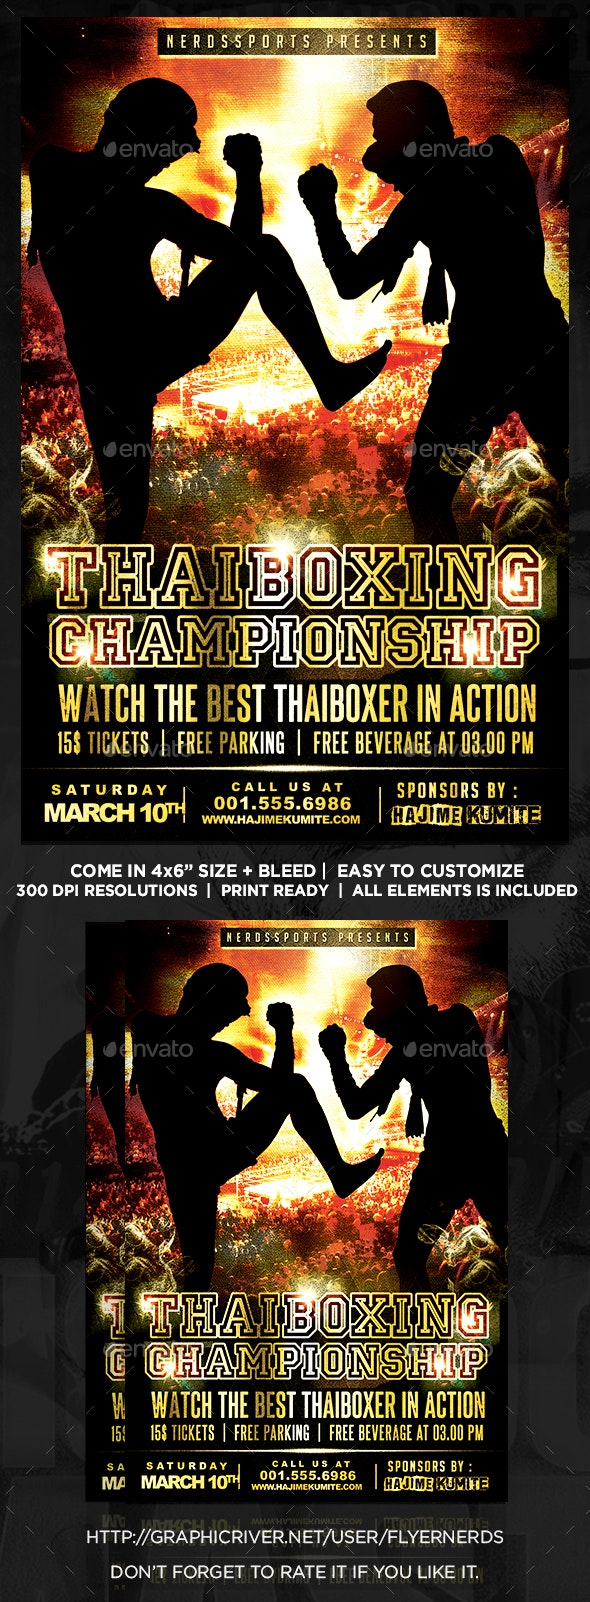 Thai Boxing Championships Sports Flyer - Sports Events